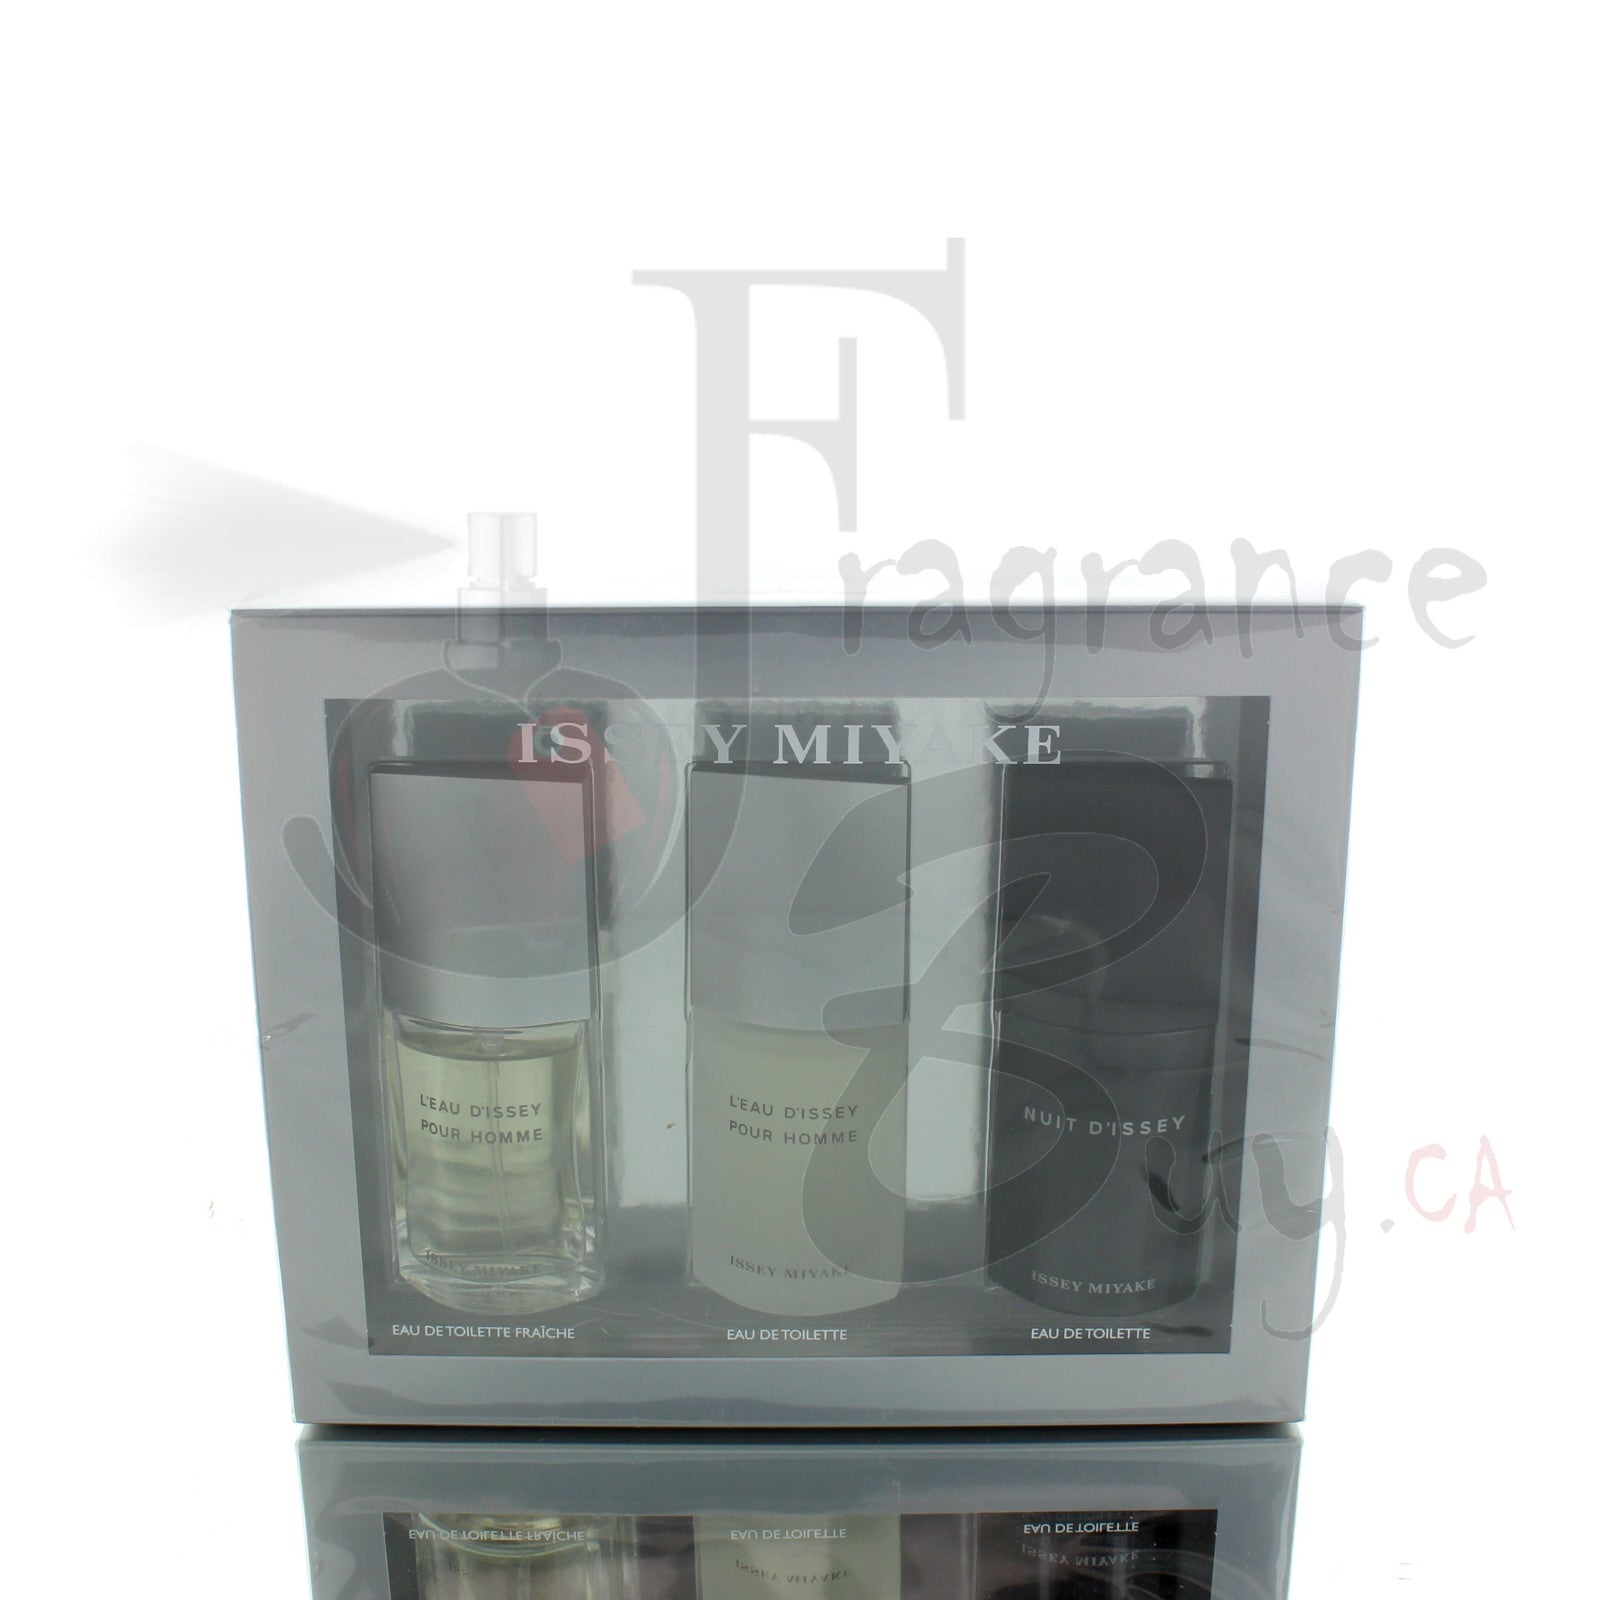 The Best of Issey Miyake (Trio Kit) For Man